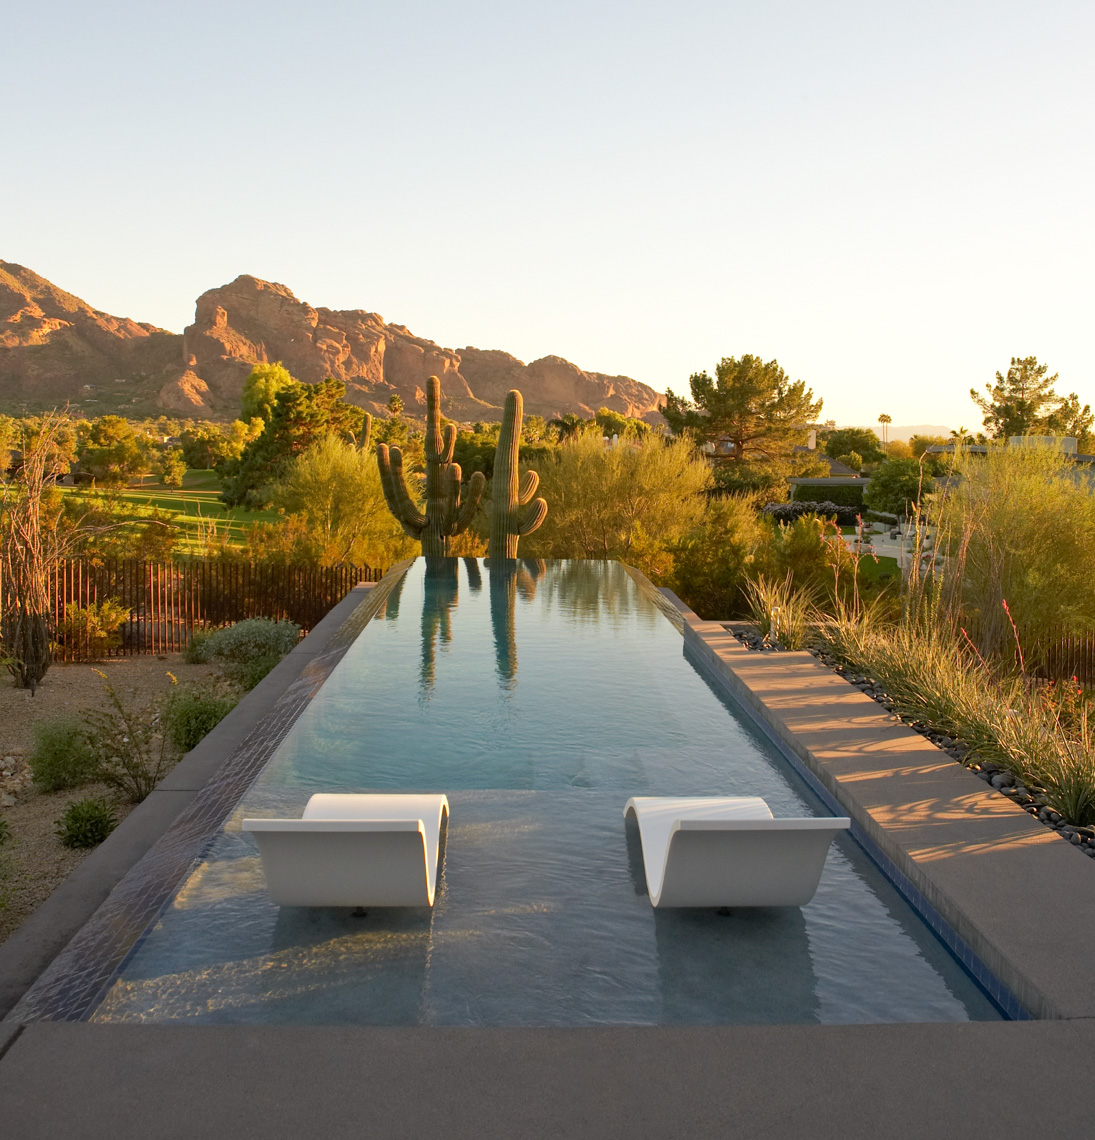 infinity pool with chic white lounge chairs overlooking golf course and desert mountains